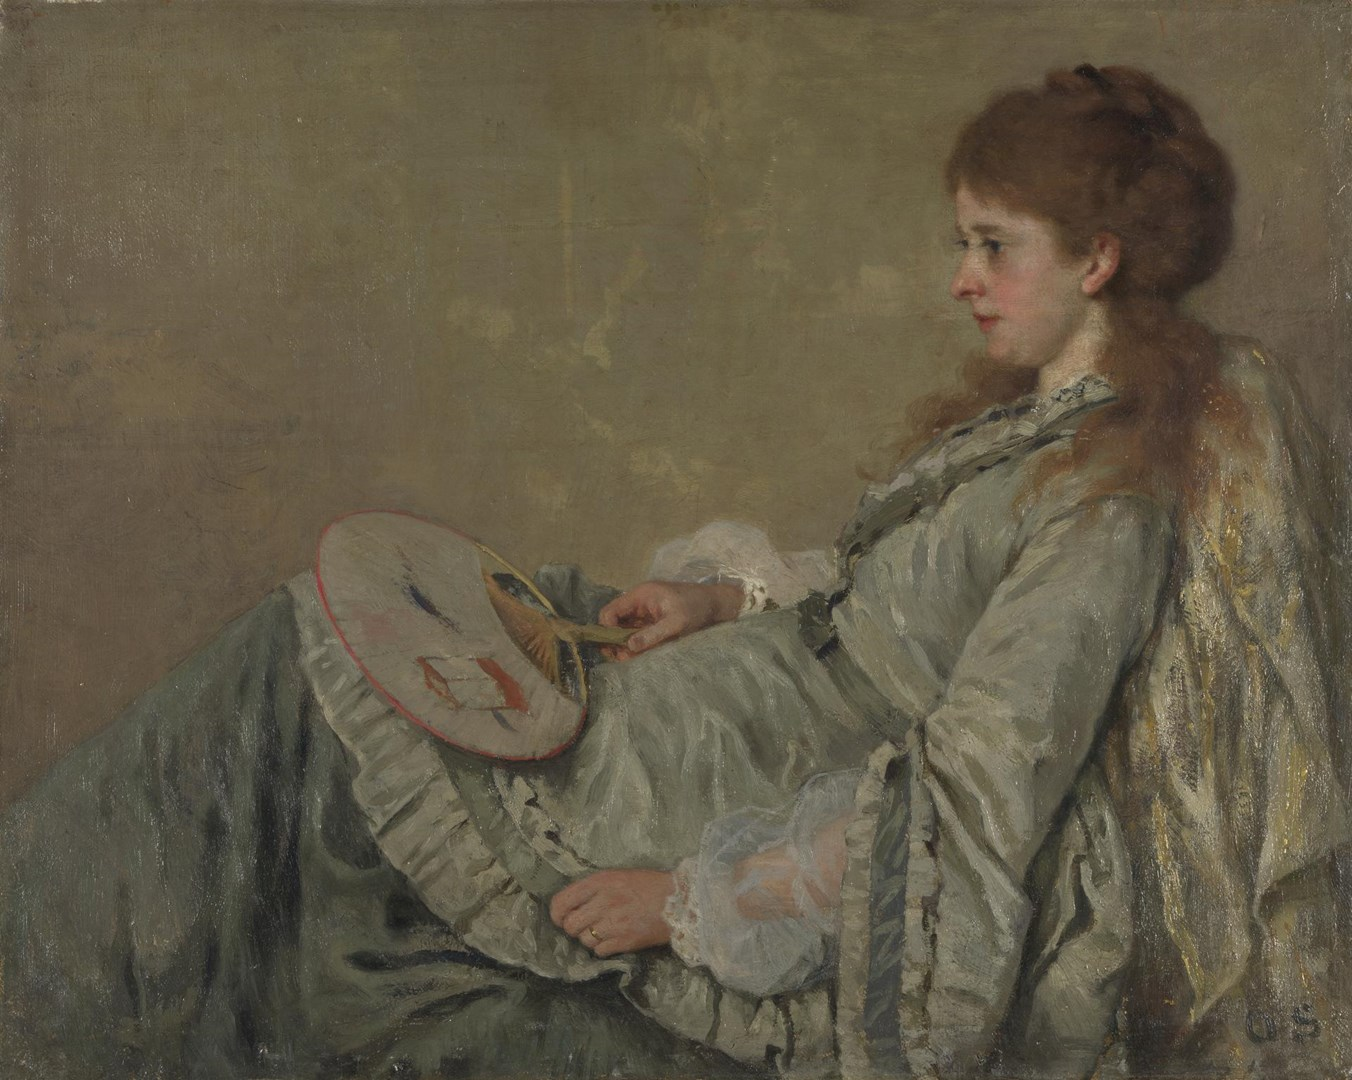 Portrait of the Artist's Wife by Otto Franz Scholderer